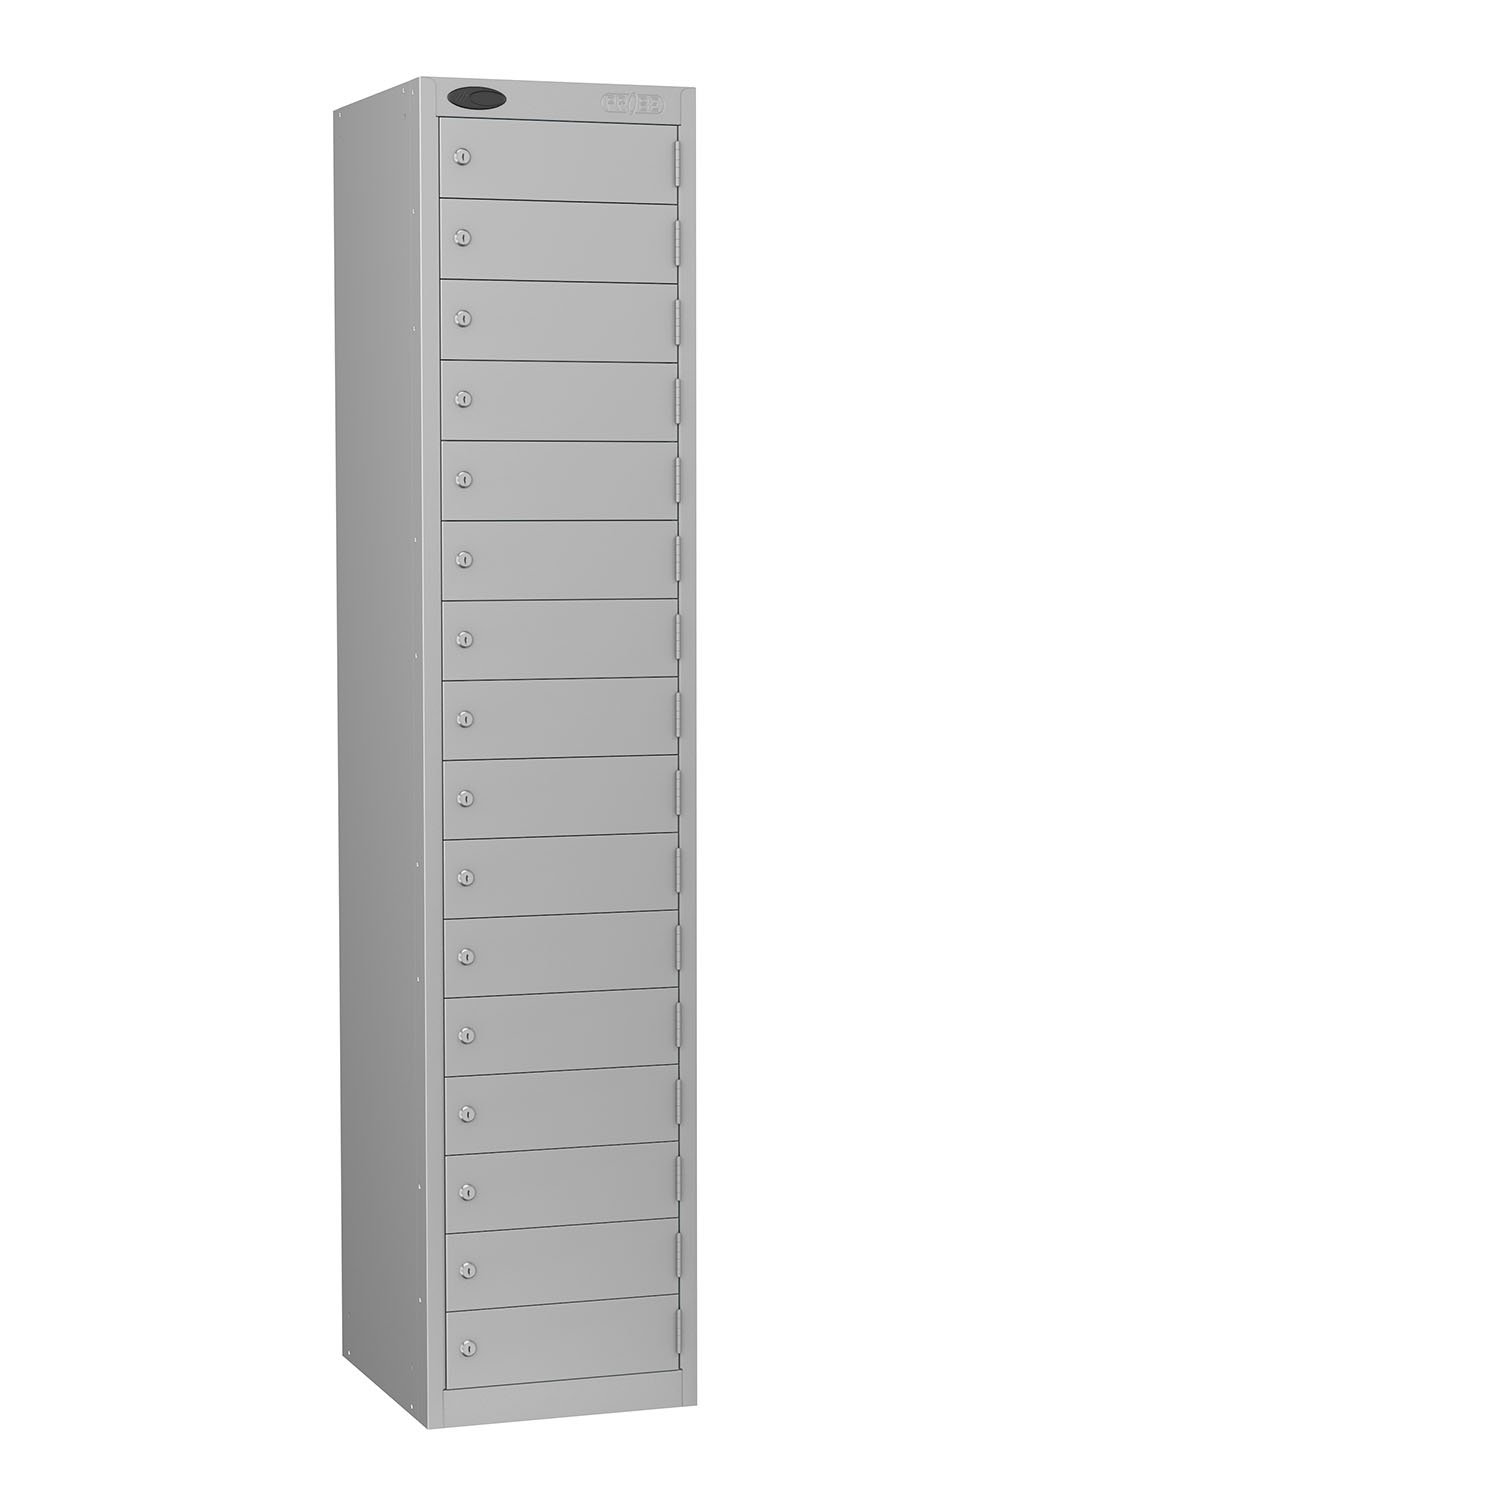 Probe 16 doors small compartments lockers in sliver colour